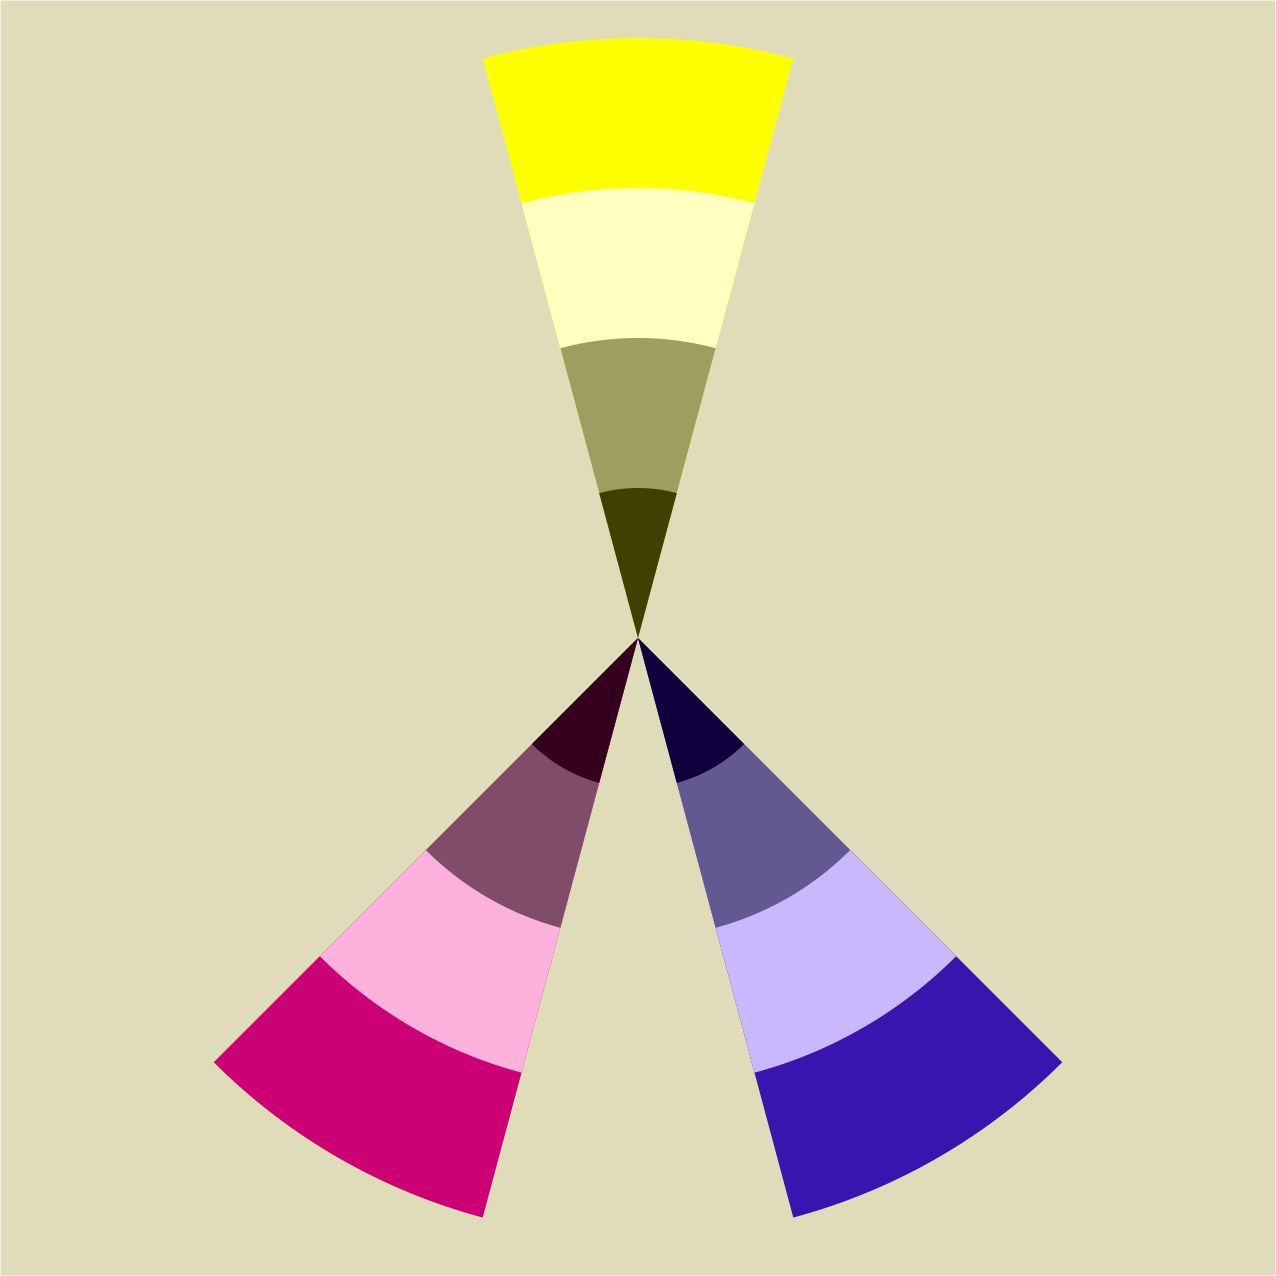 Split Complementary Of Yellow Red Violet And Violet Blue